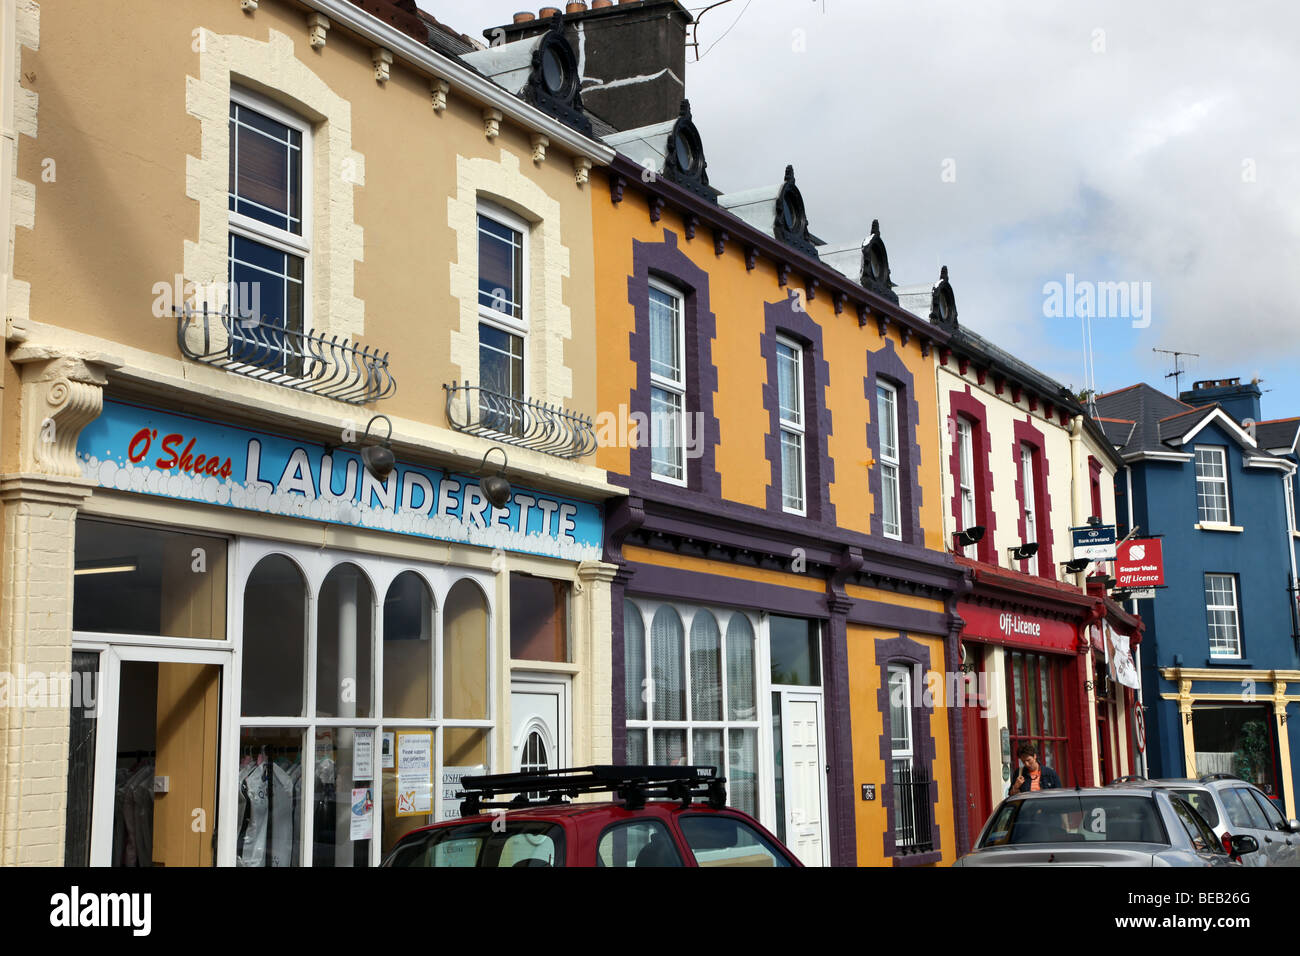 Castletownbere coloured shopfronts, Beara Peninsula, West Cork, Ireland - Stock Image